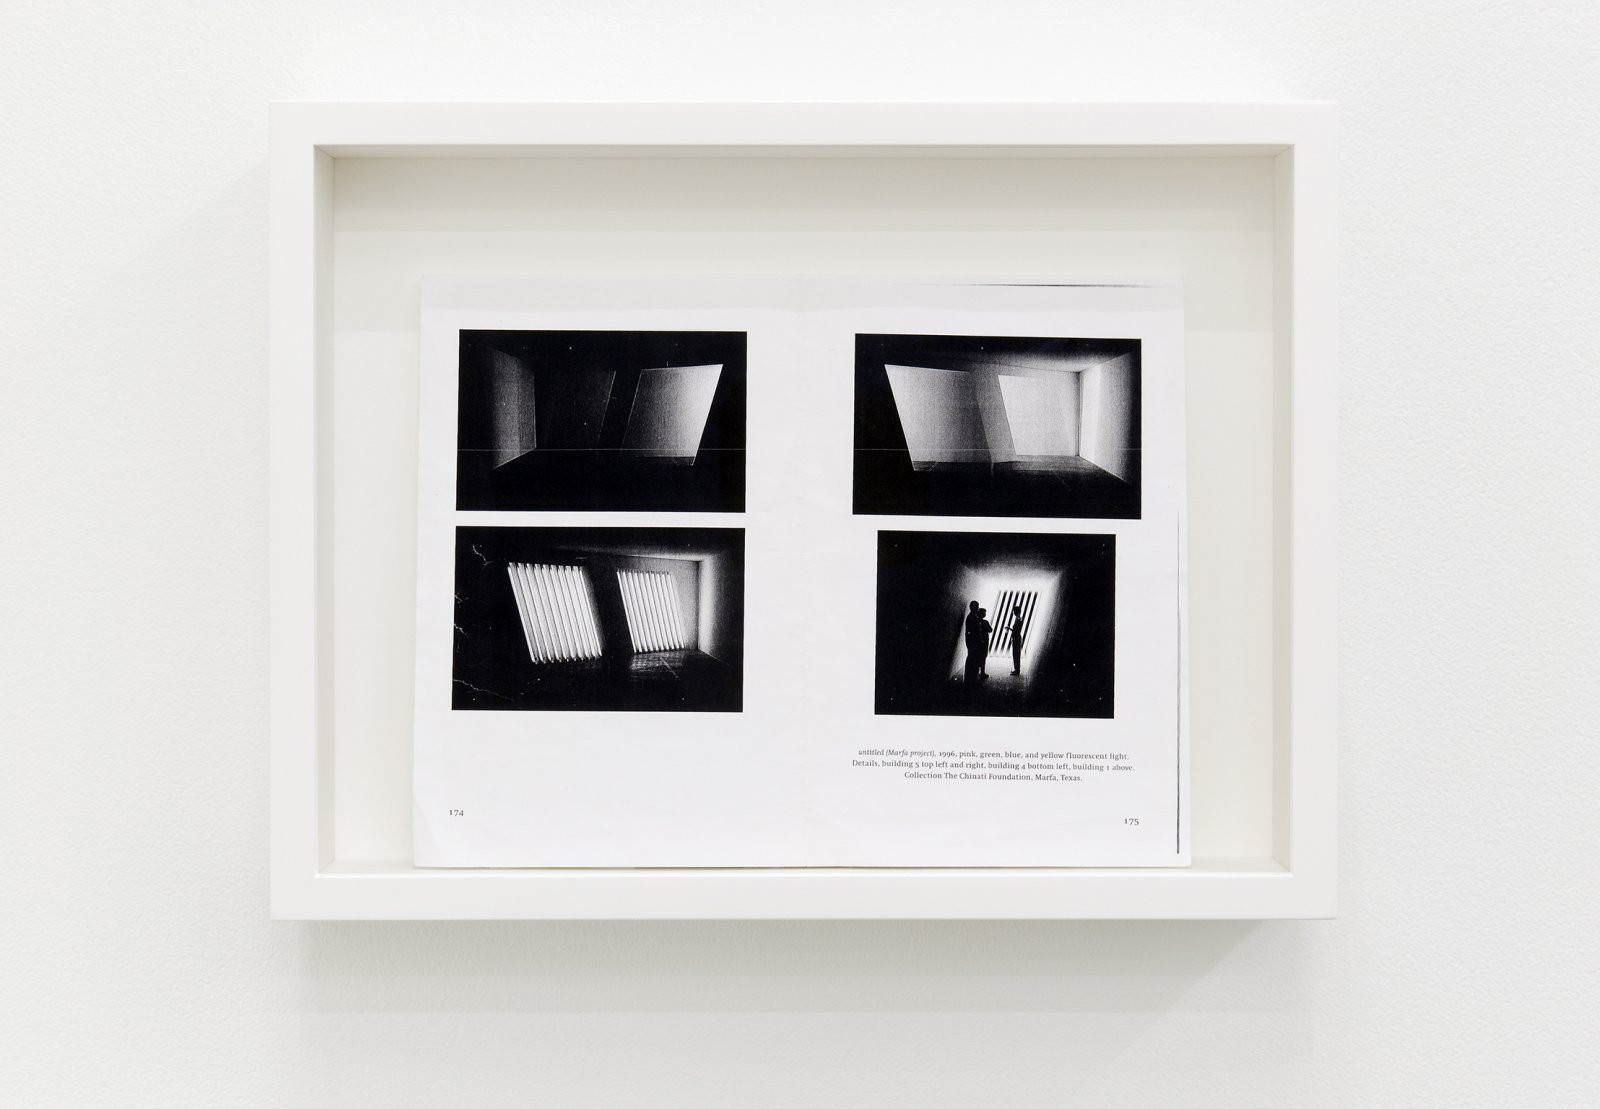 Arabella Campbell, A catalog of its own content (detail), 2011, 15 acrylic on linen panels, 1 framed photocopy of Light in Architecture and Art, p. 174–175, 11 x 15 x 3 in. (29 x 38 x 8 cm) by